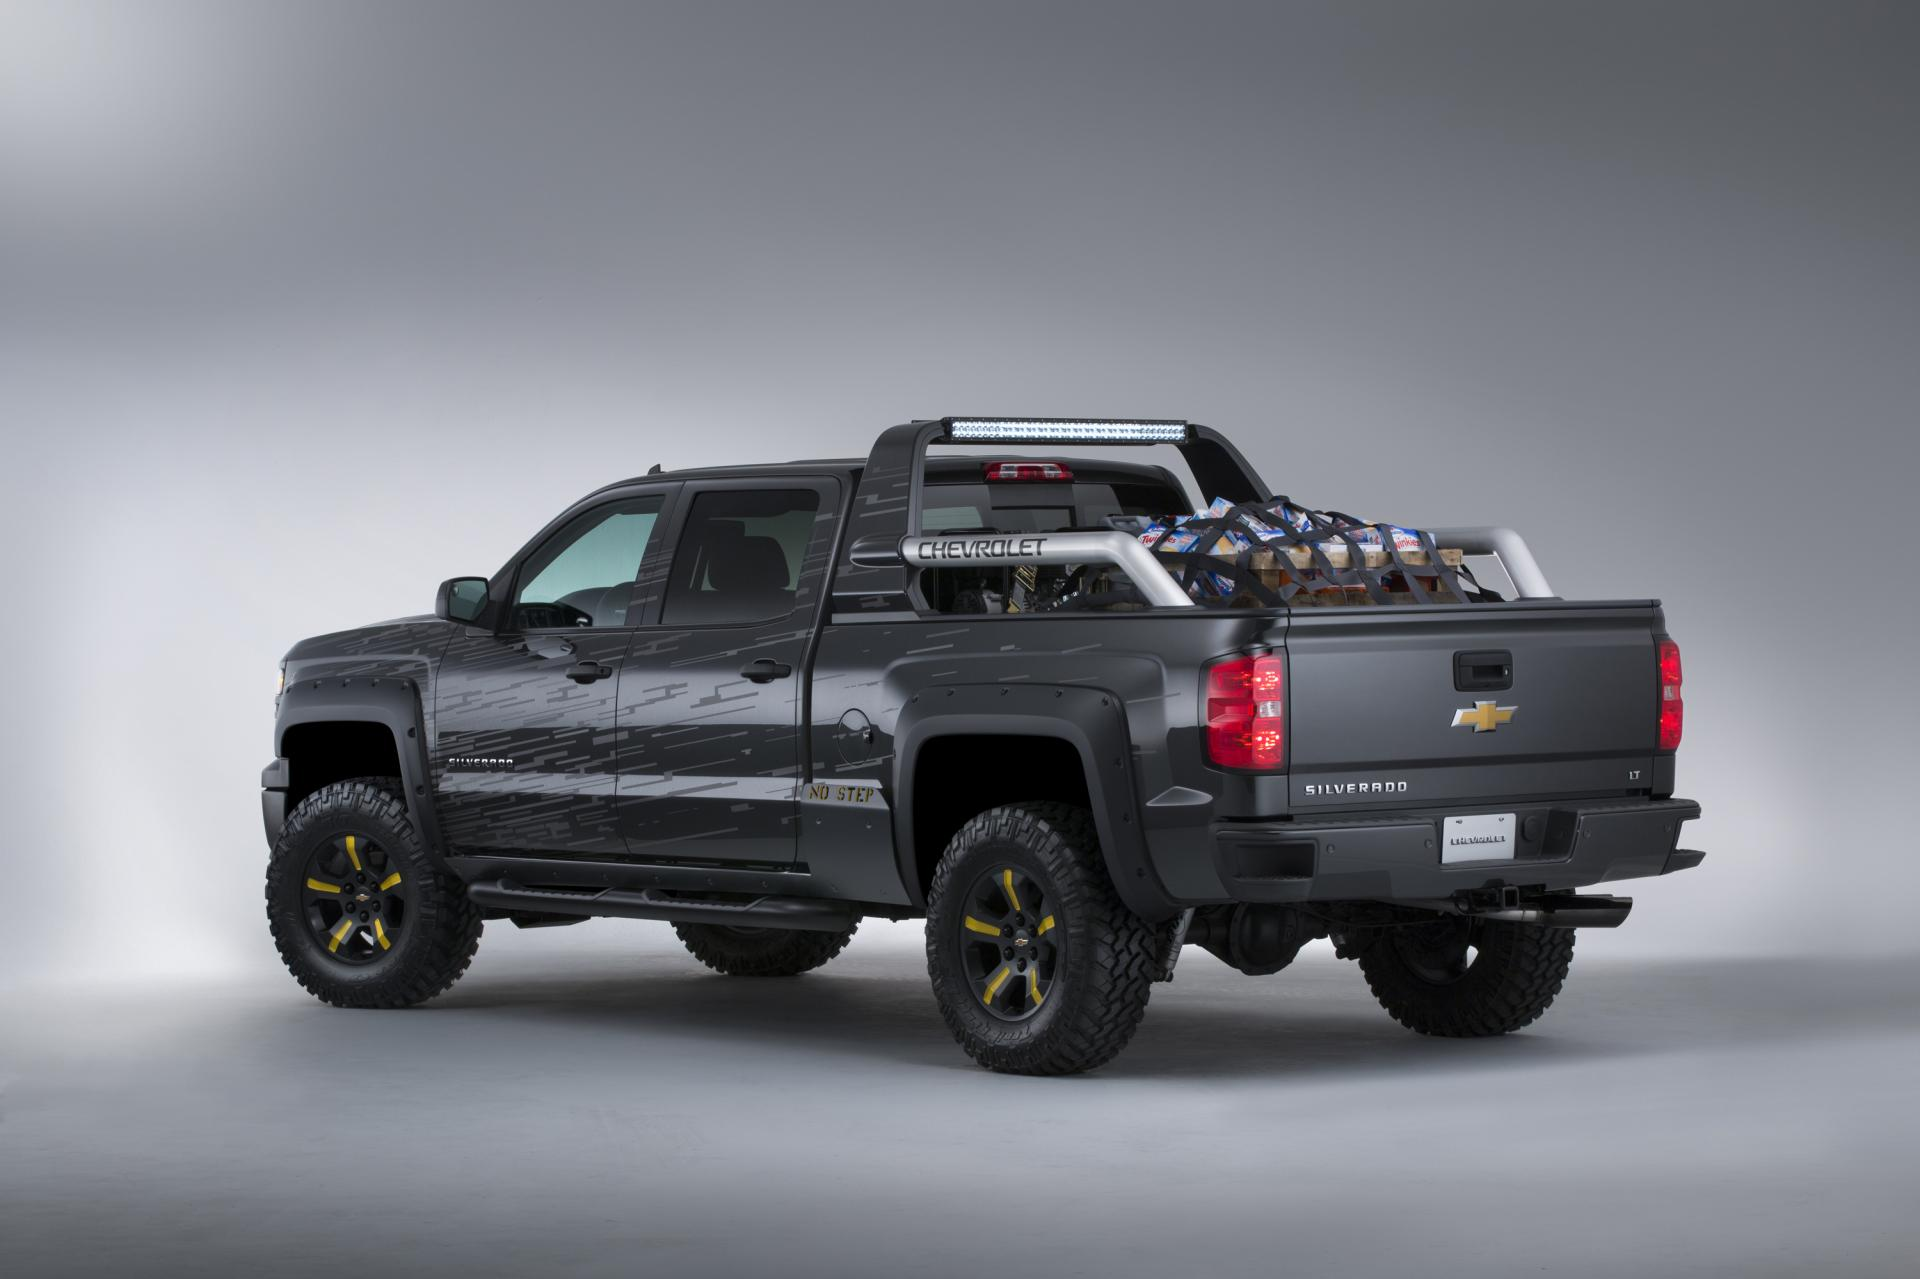 2014 Chevrolet Silverado Black Ops Concept News And Information, Research,  And Pricing